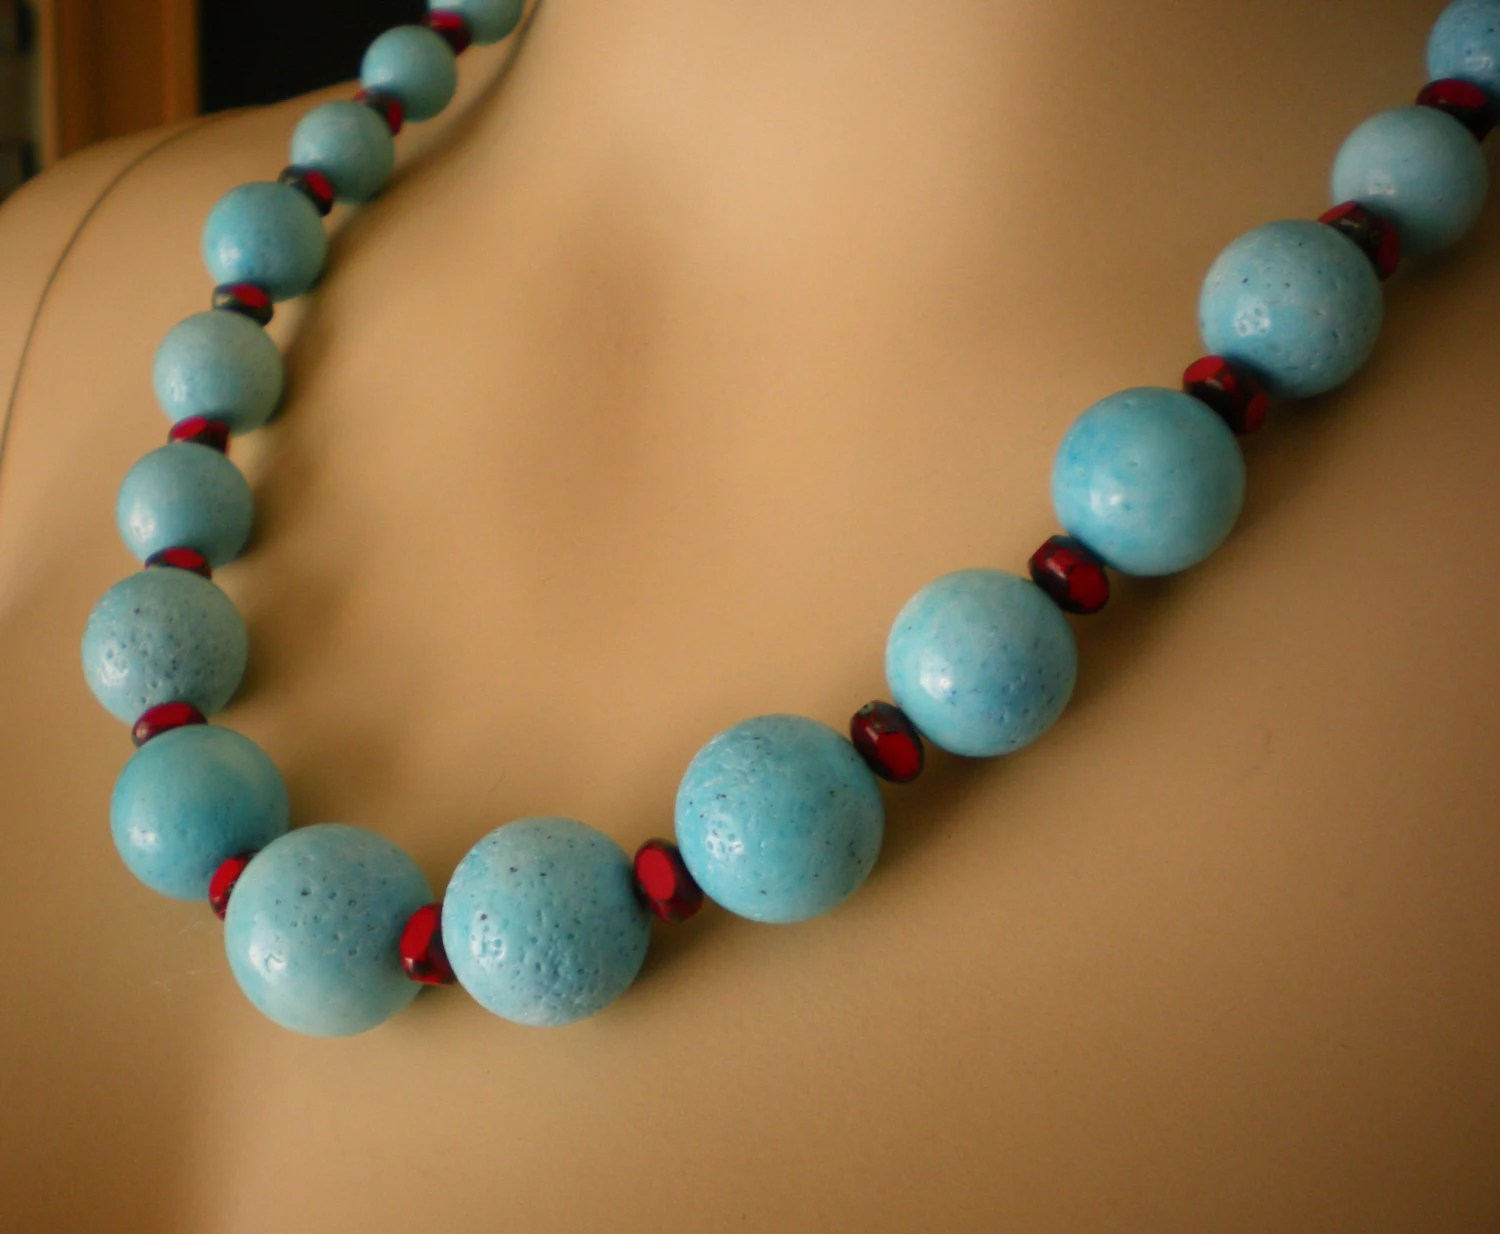 Gemstone Necklace From Blue Sponge Coral And Red Glass Beads